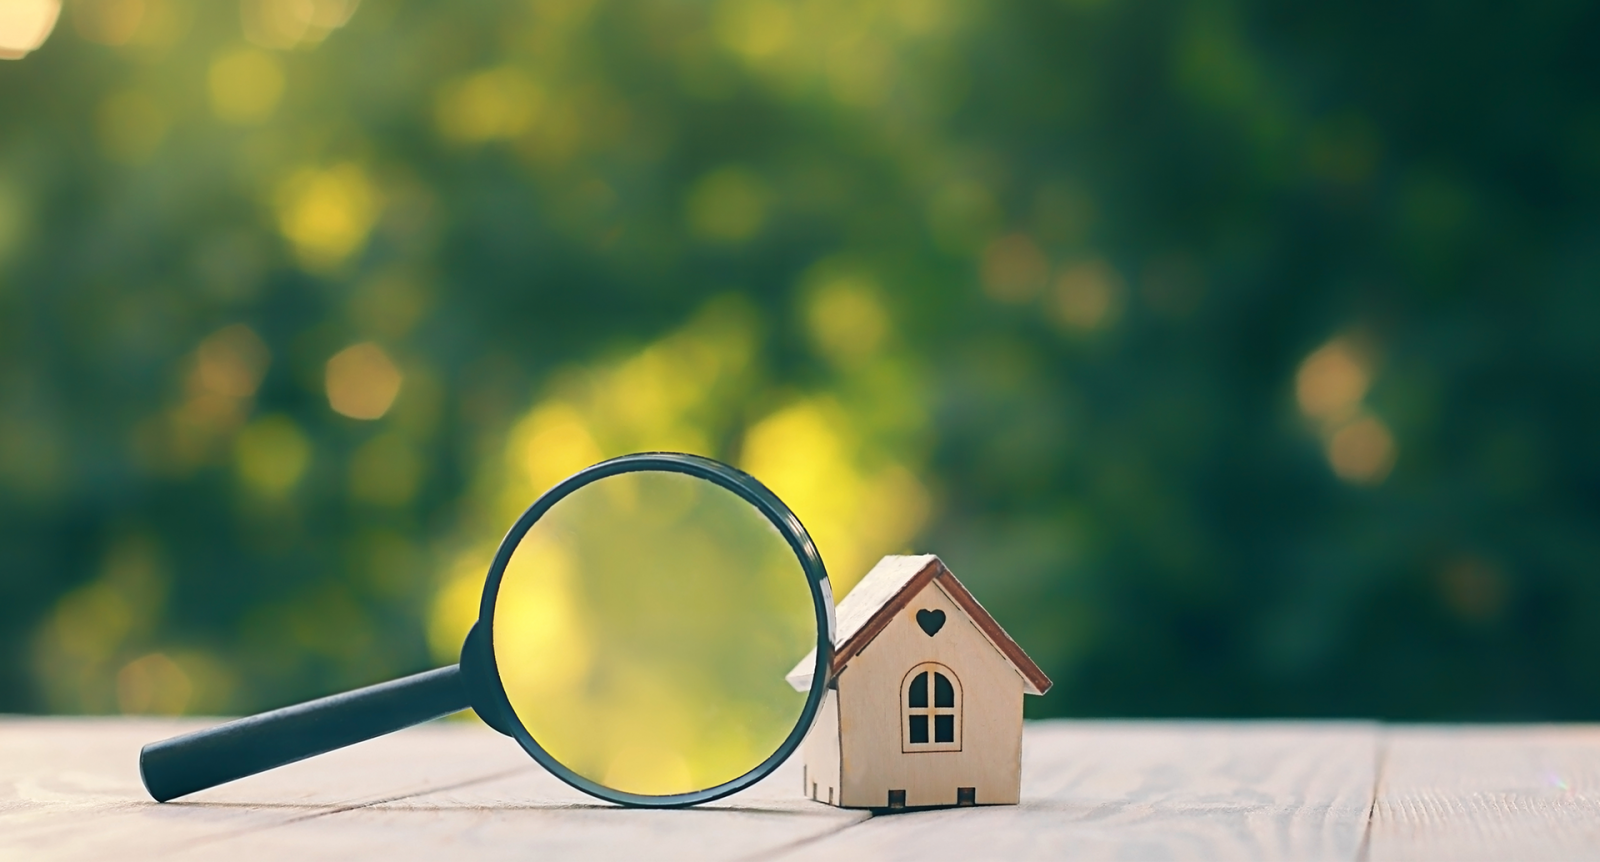 Small house on magnifying glass banner image